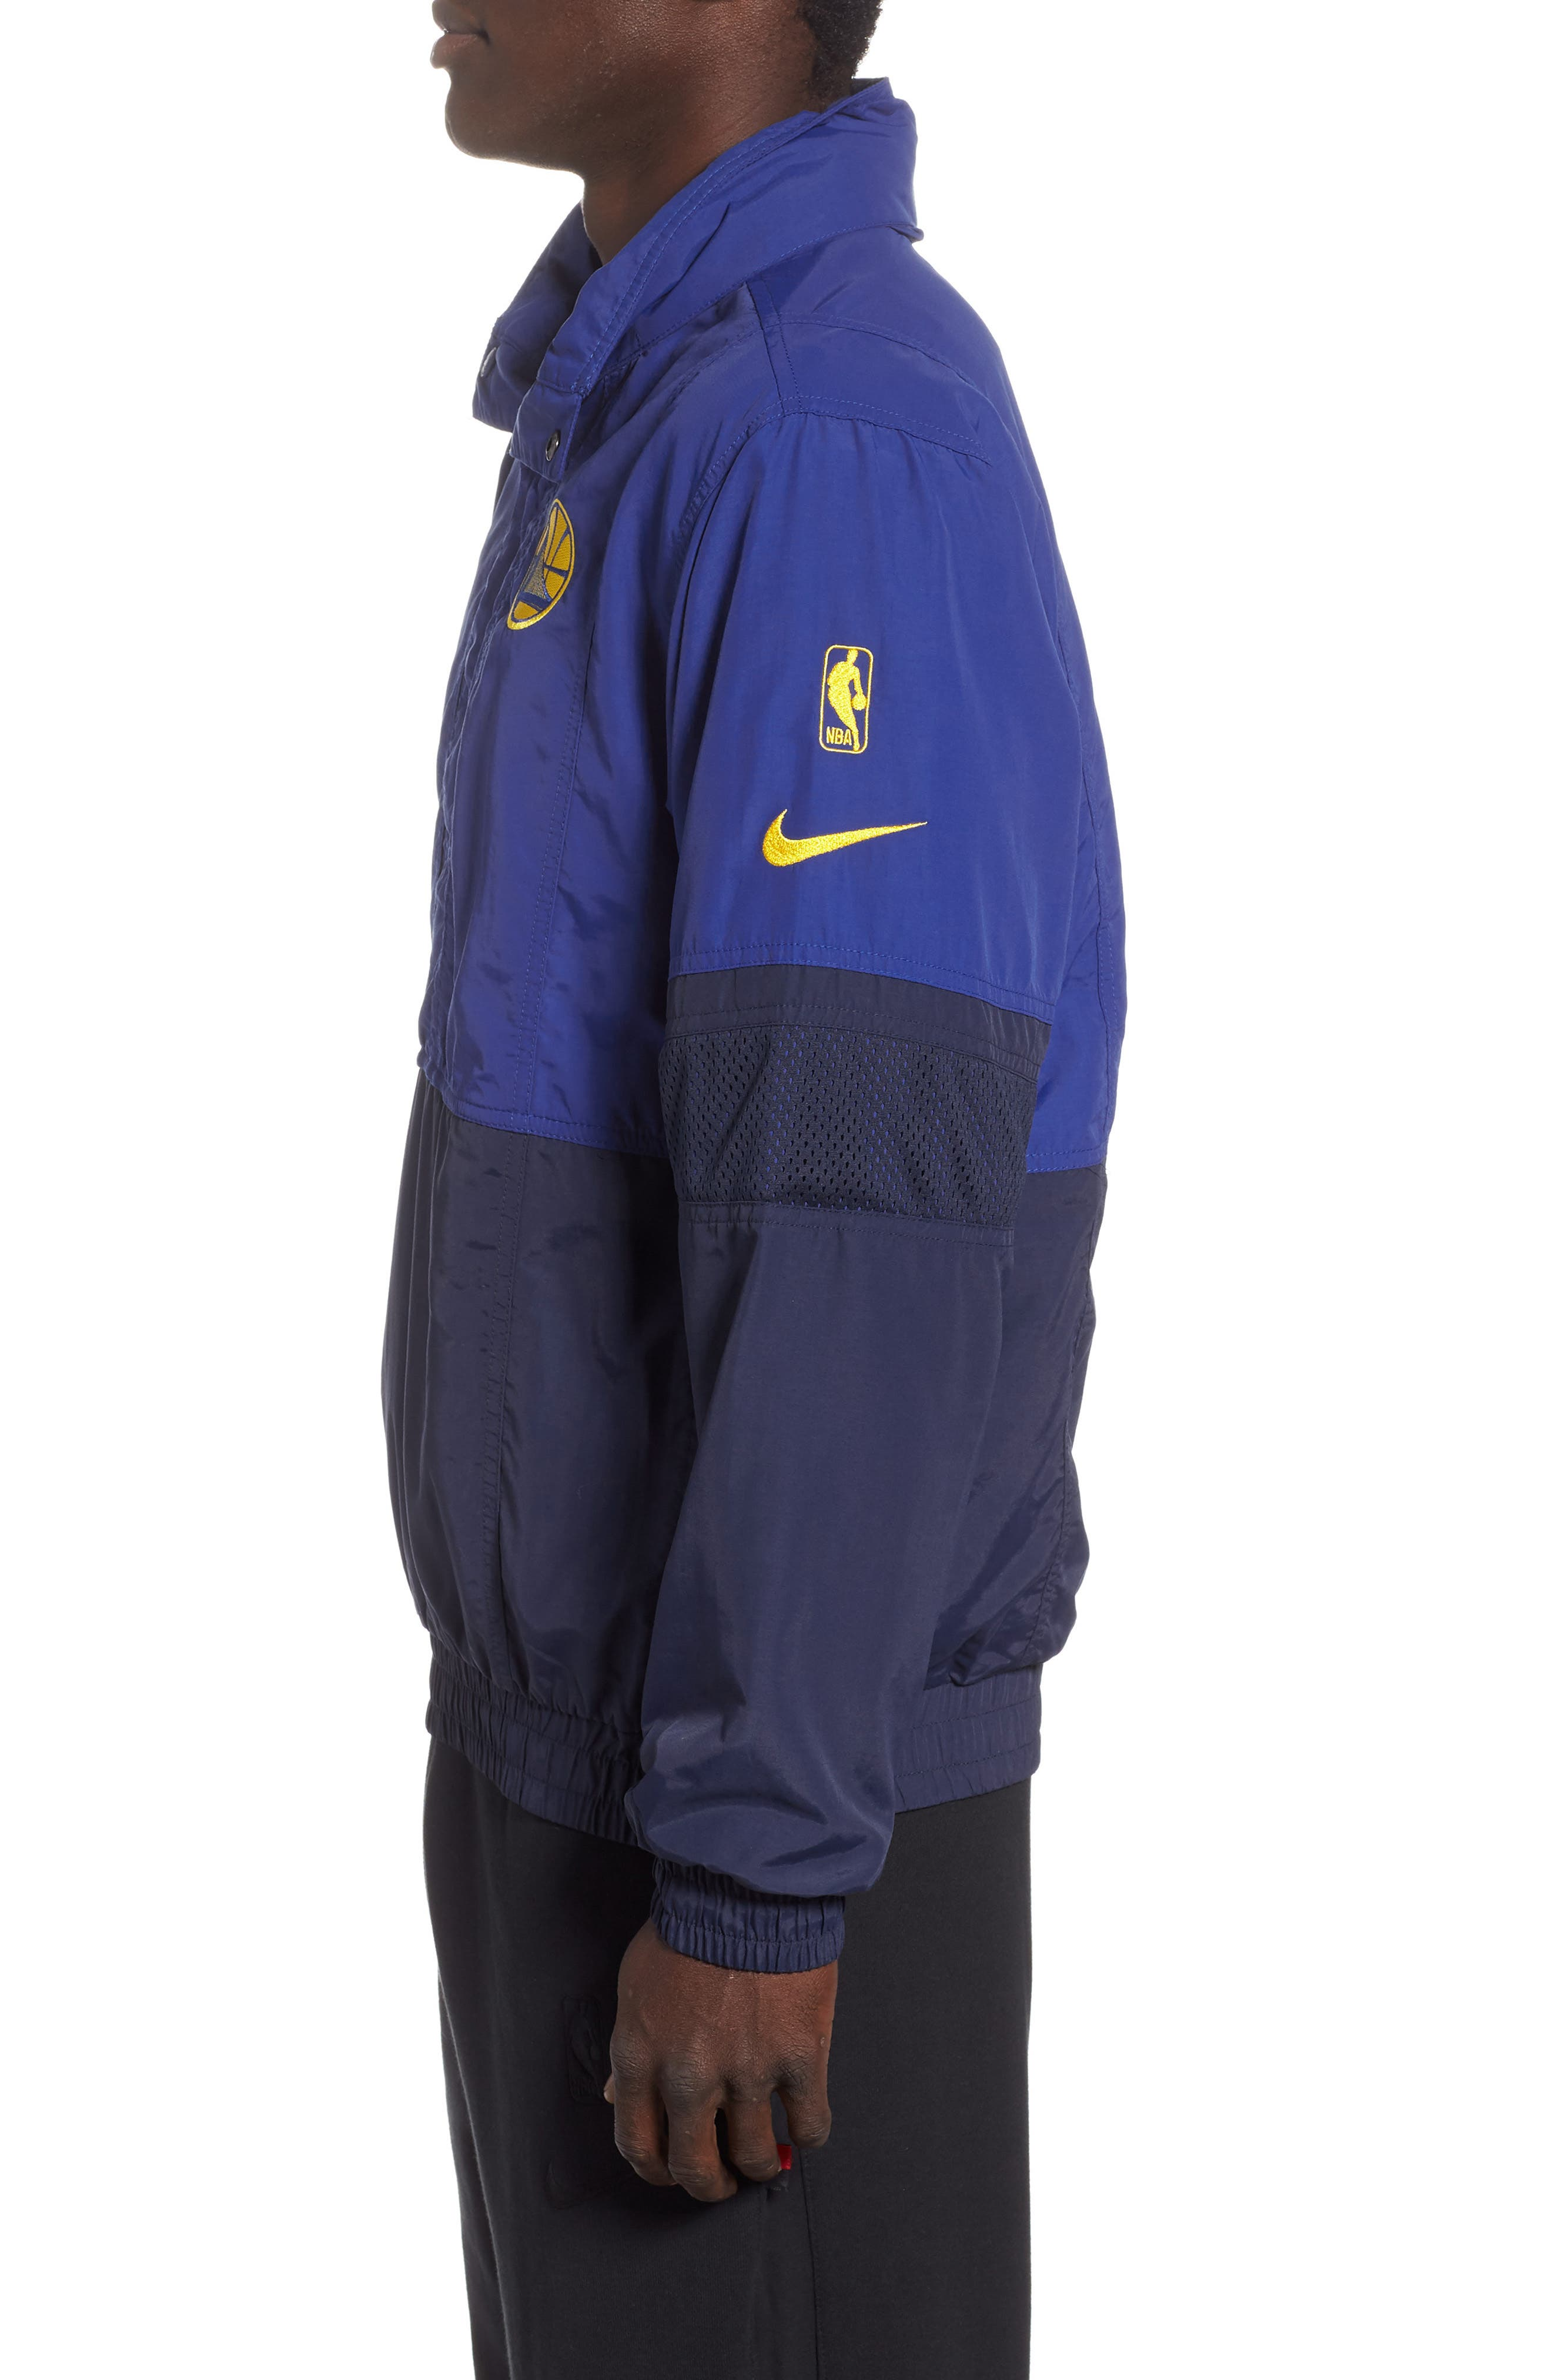 Golden State Warriors Courtside Warm-Up Jacket,                             Alternate thumbnail 3, color,                             RUSH BLUE/ NAVY/ AMARILLO